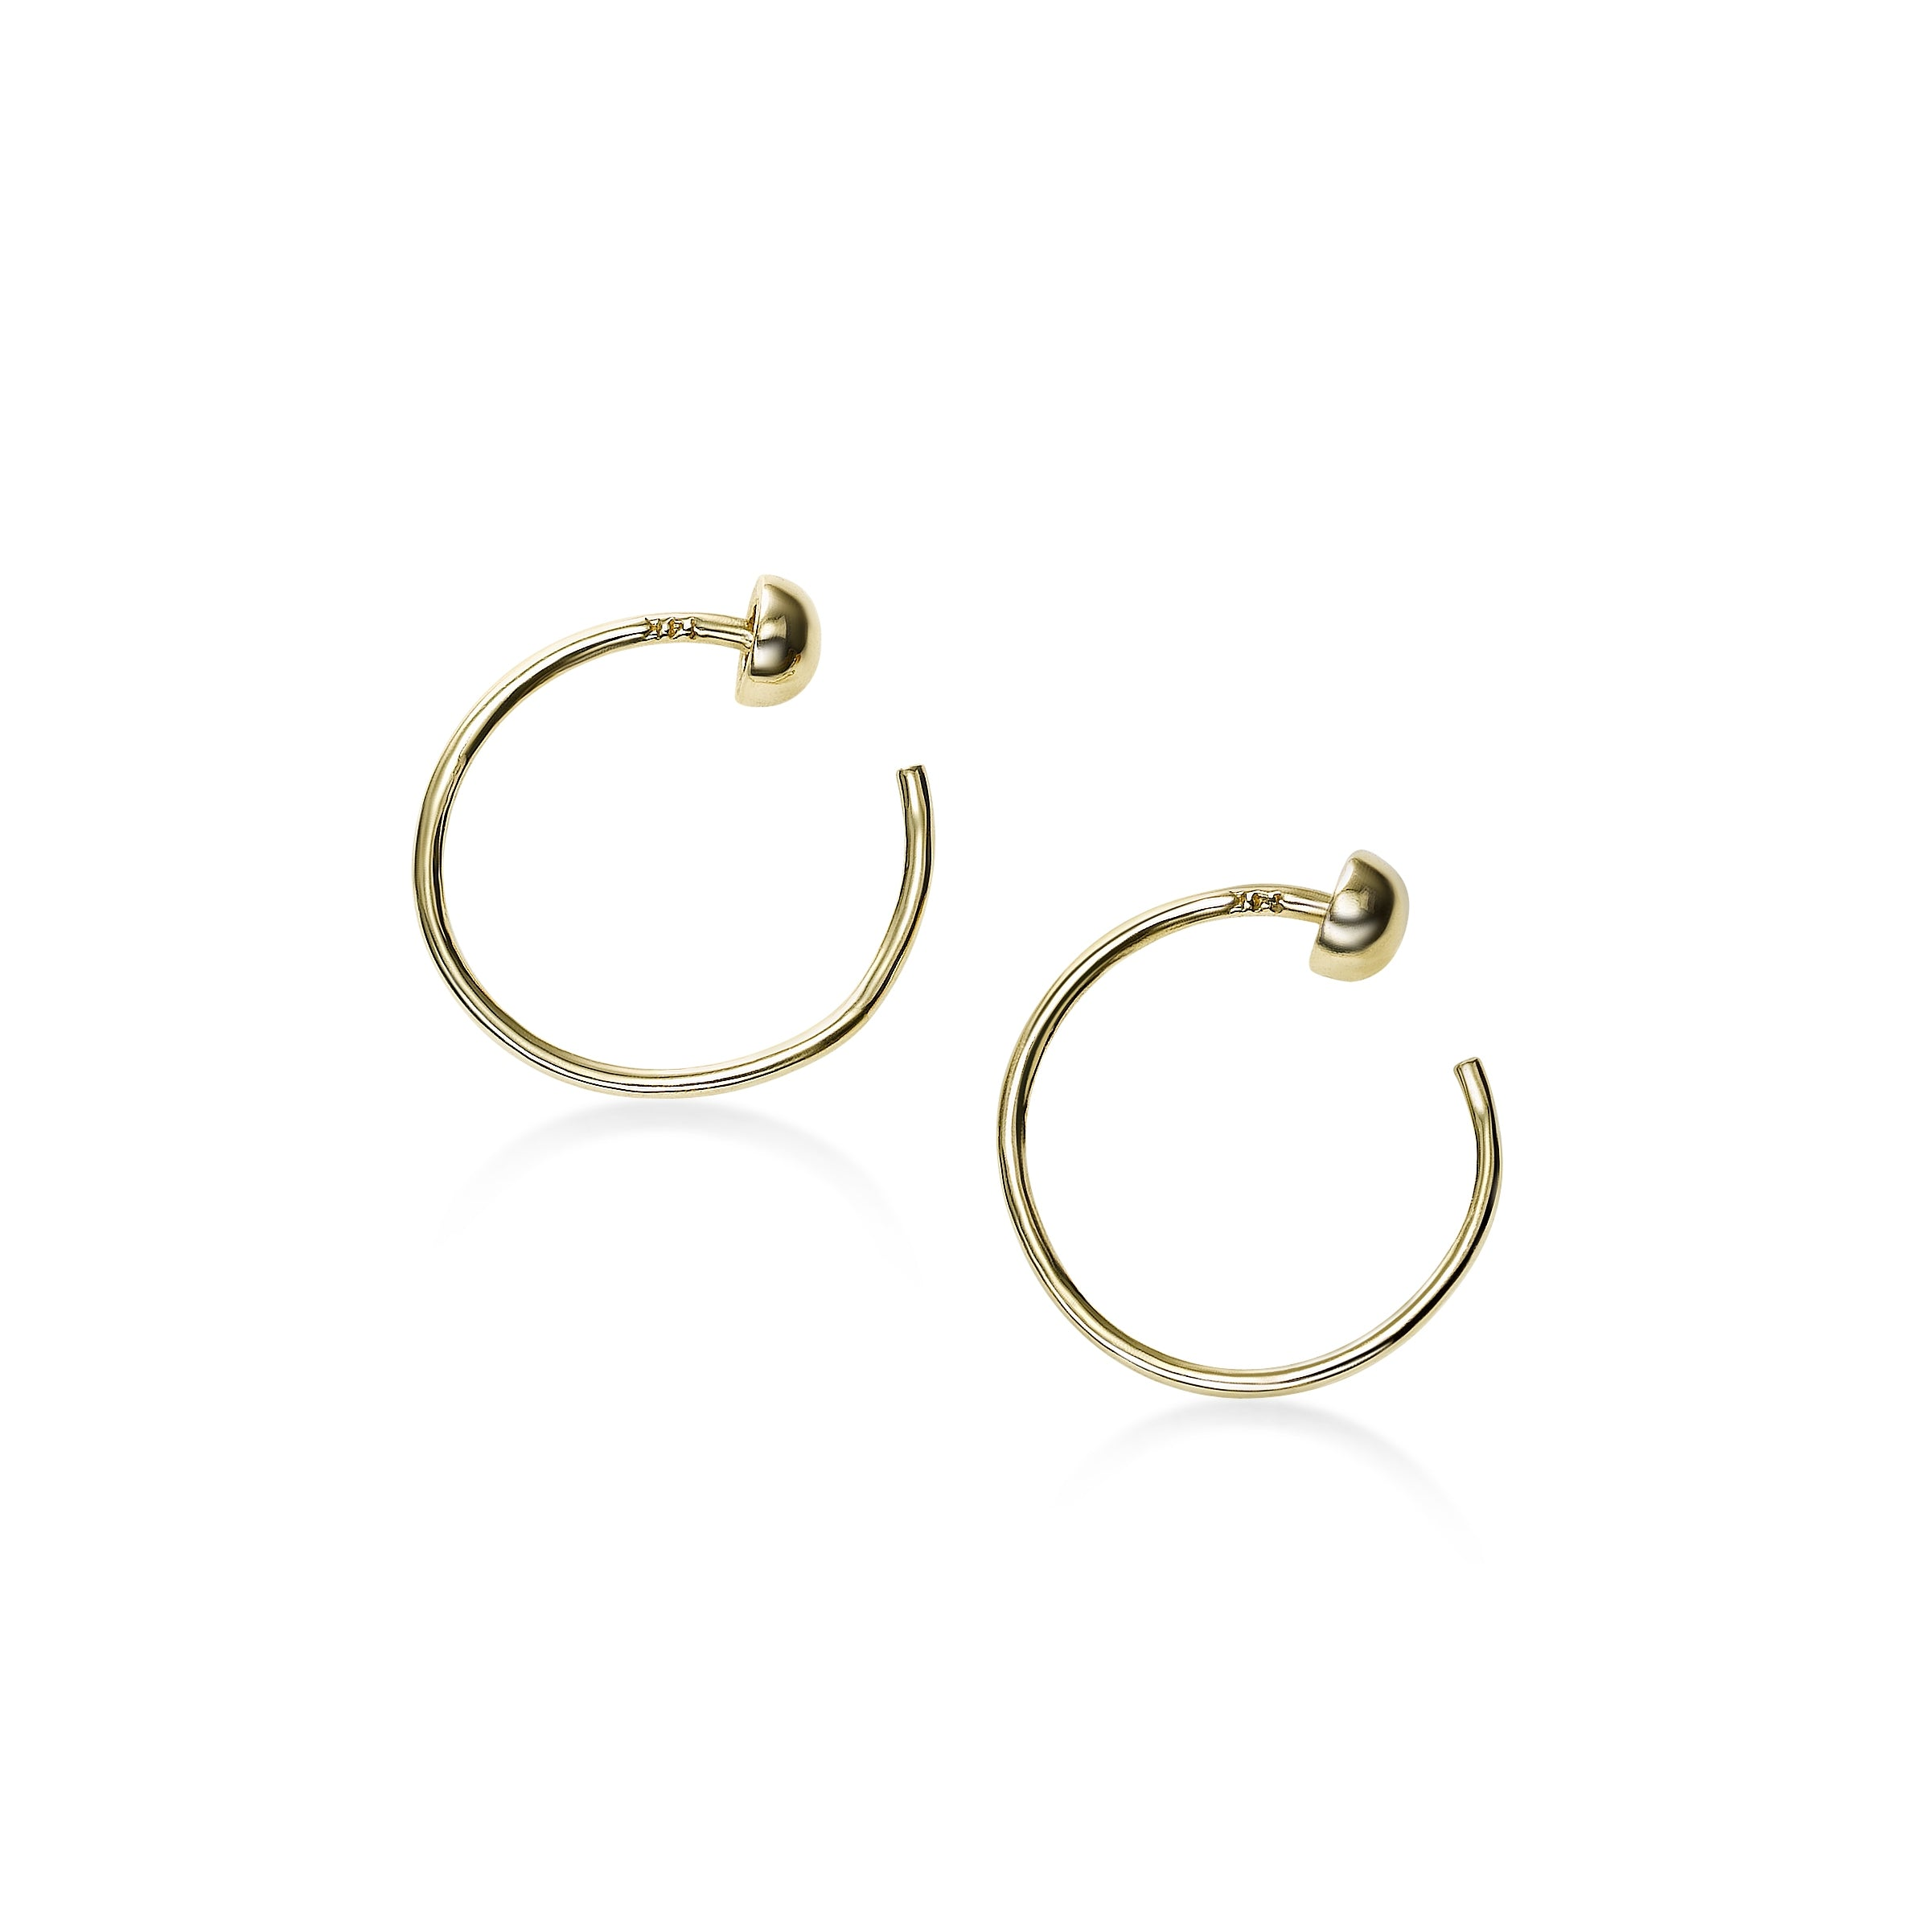 Open Wire Hoop Earrings, .50 Inch, 14K Yellow Gold